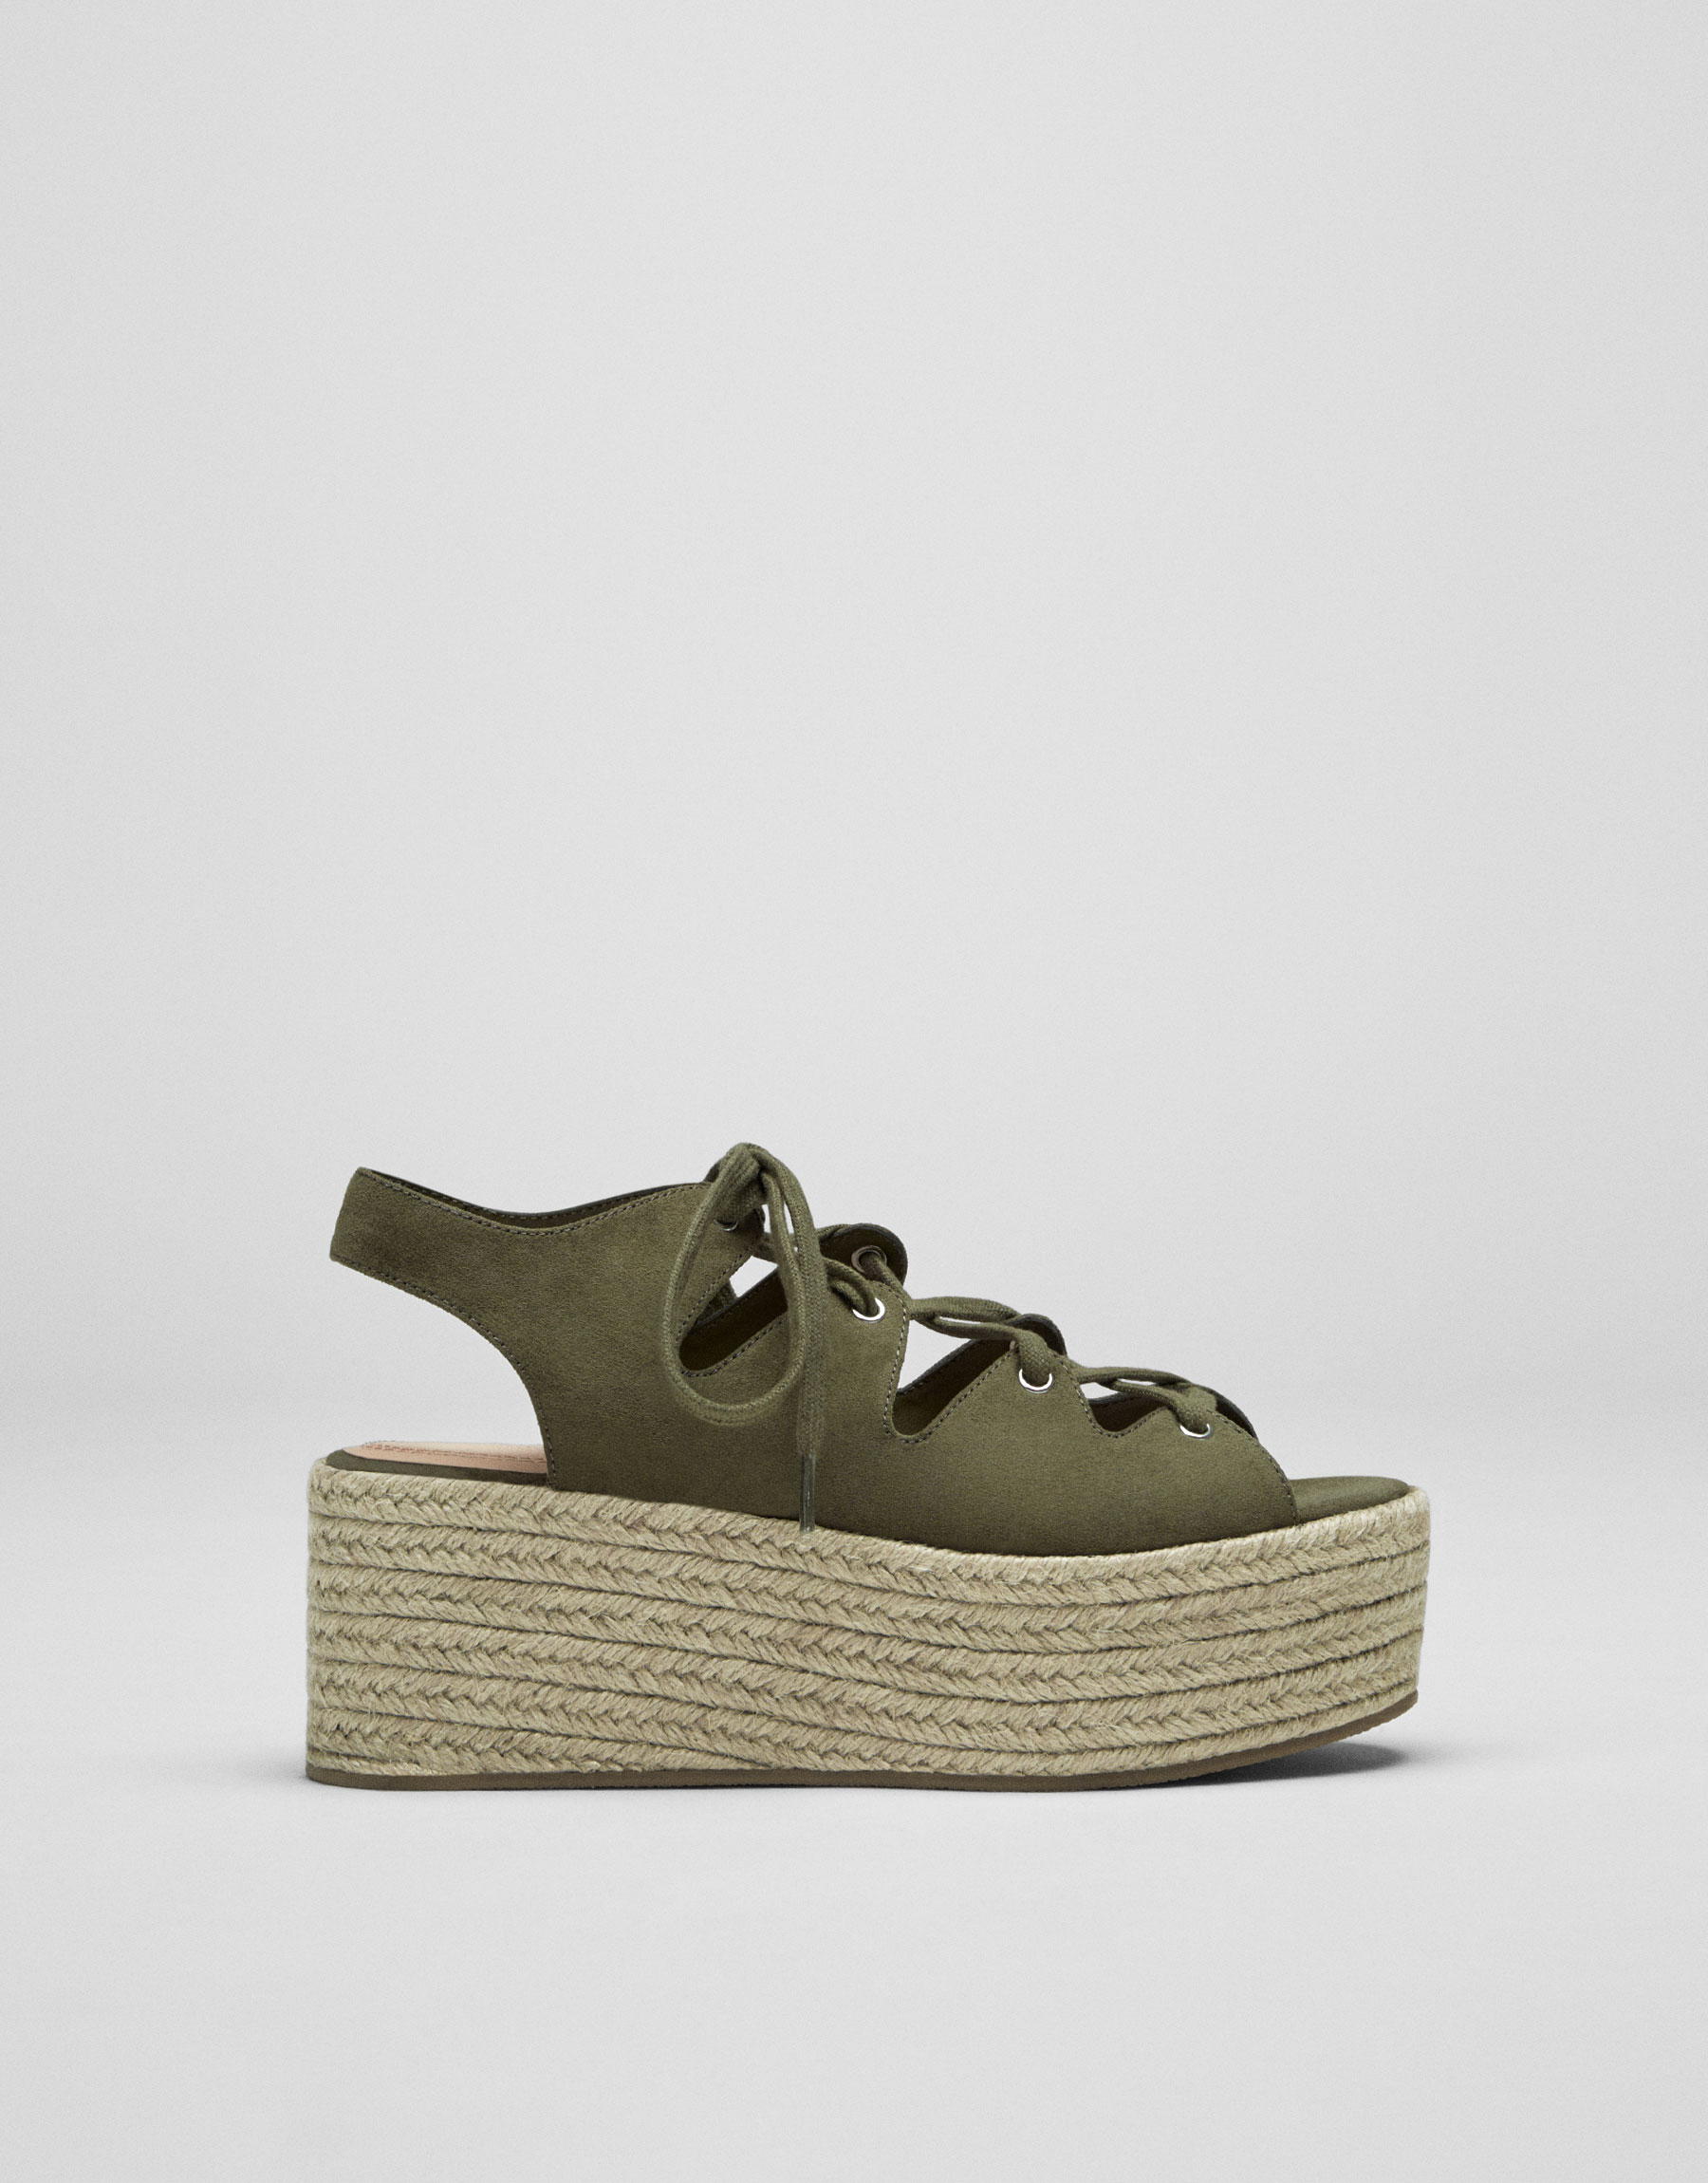 Green lace-up jute wedges